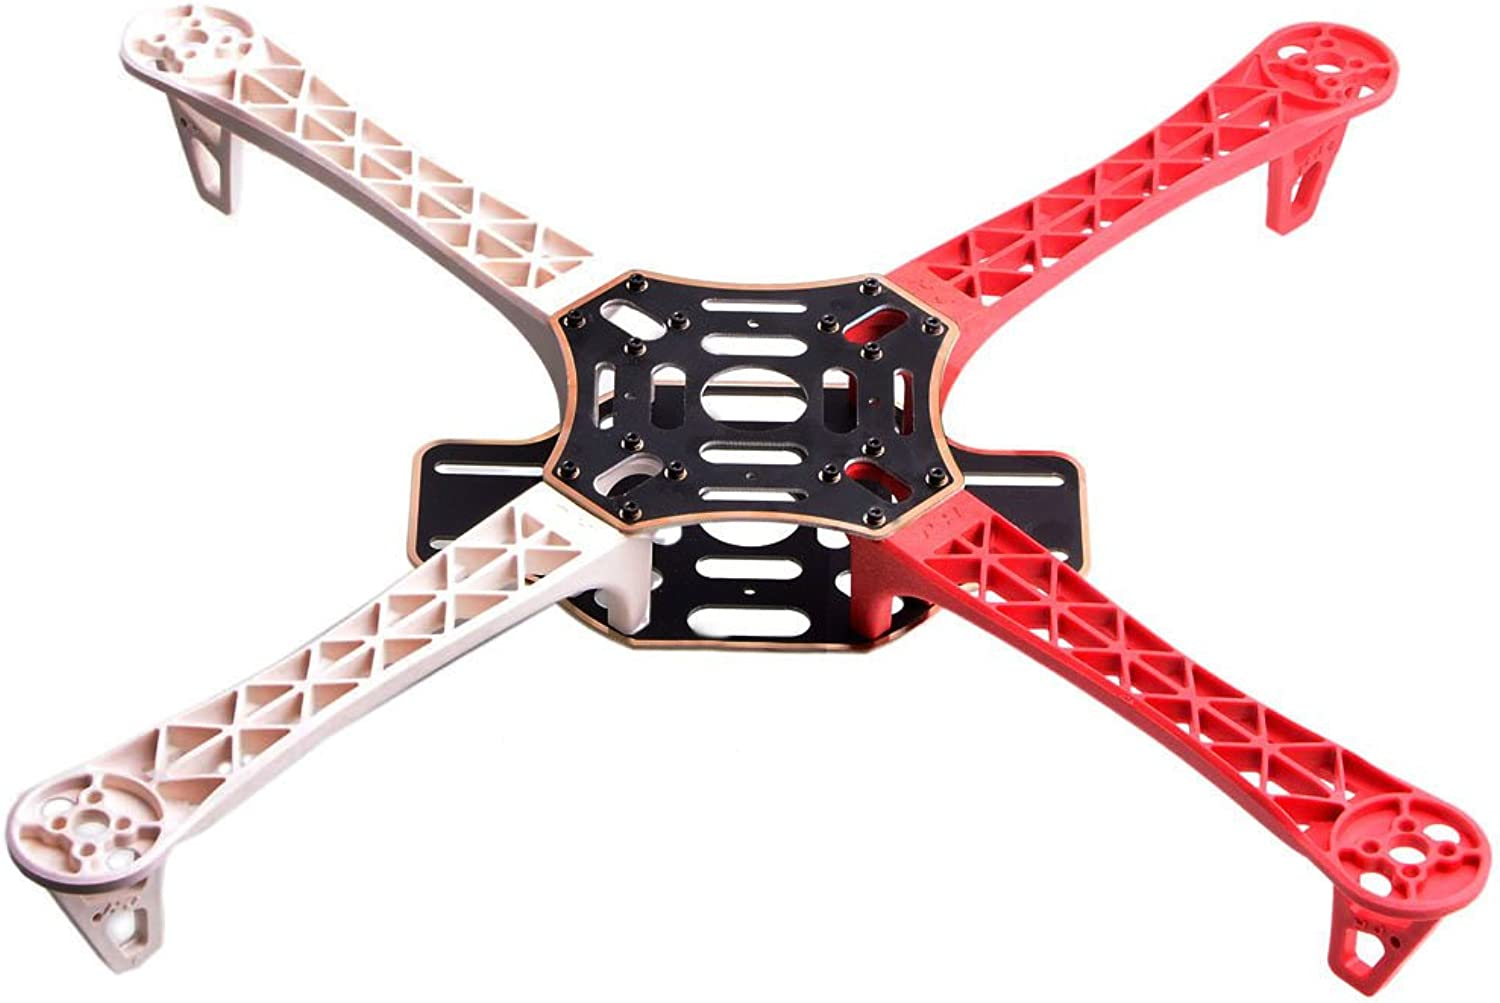 Jrelecs 4-Axis HJ450 Frame Airframe FlameWheel Strong Smooth KK MK MWC Quadcopter